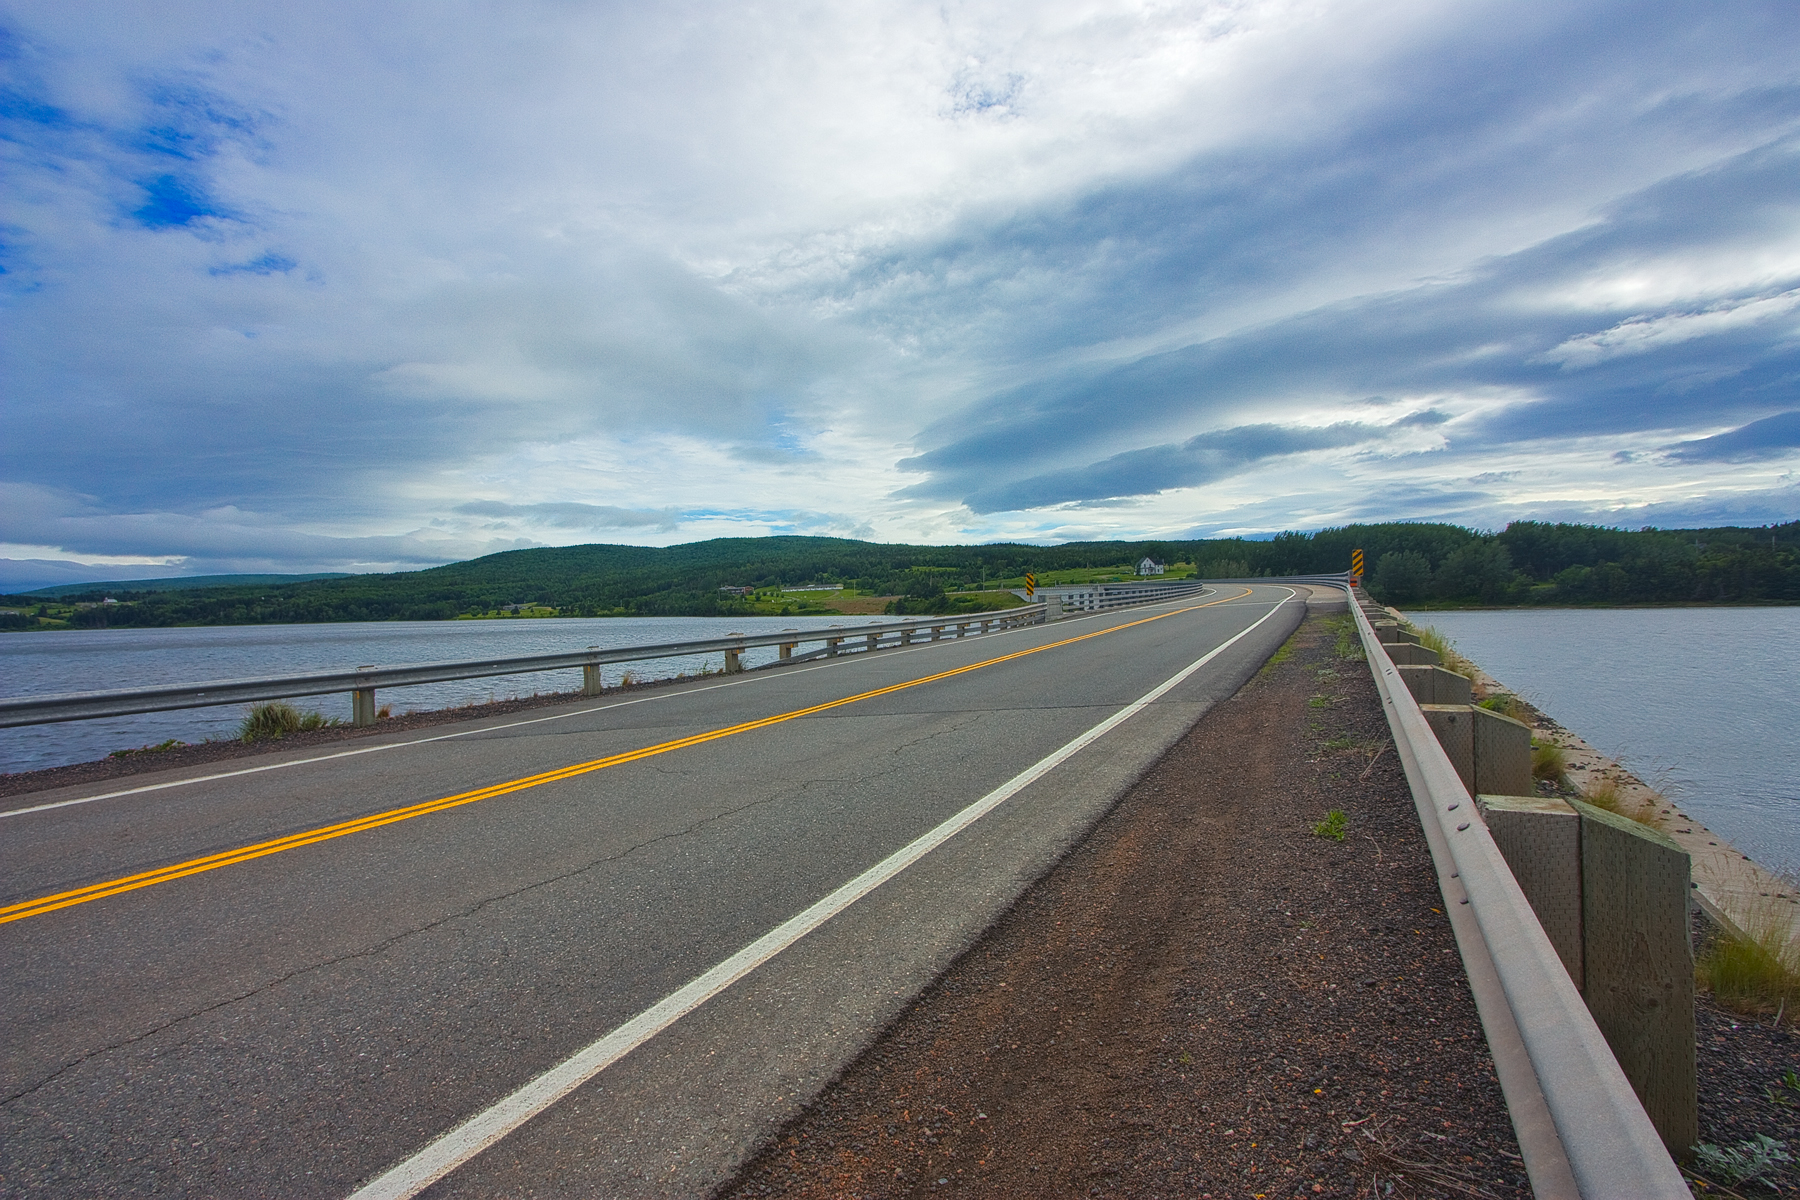 Cabot Trail Scenic Route - HDR, Pavement, Road, Resource, Res, HQ Photo